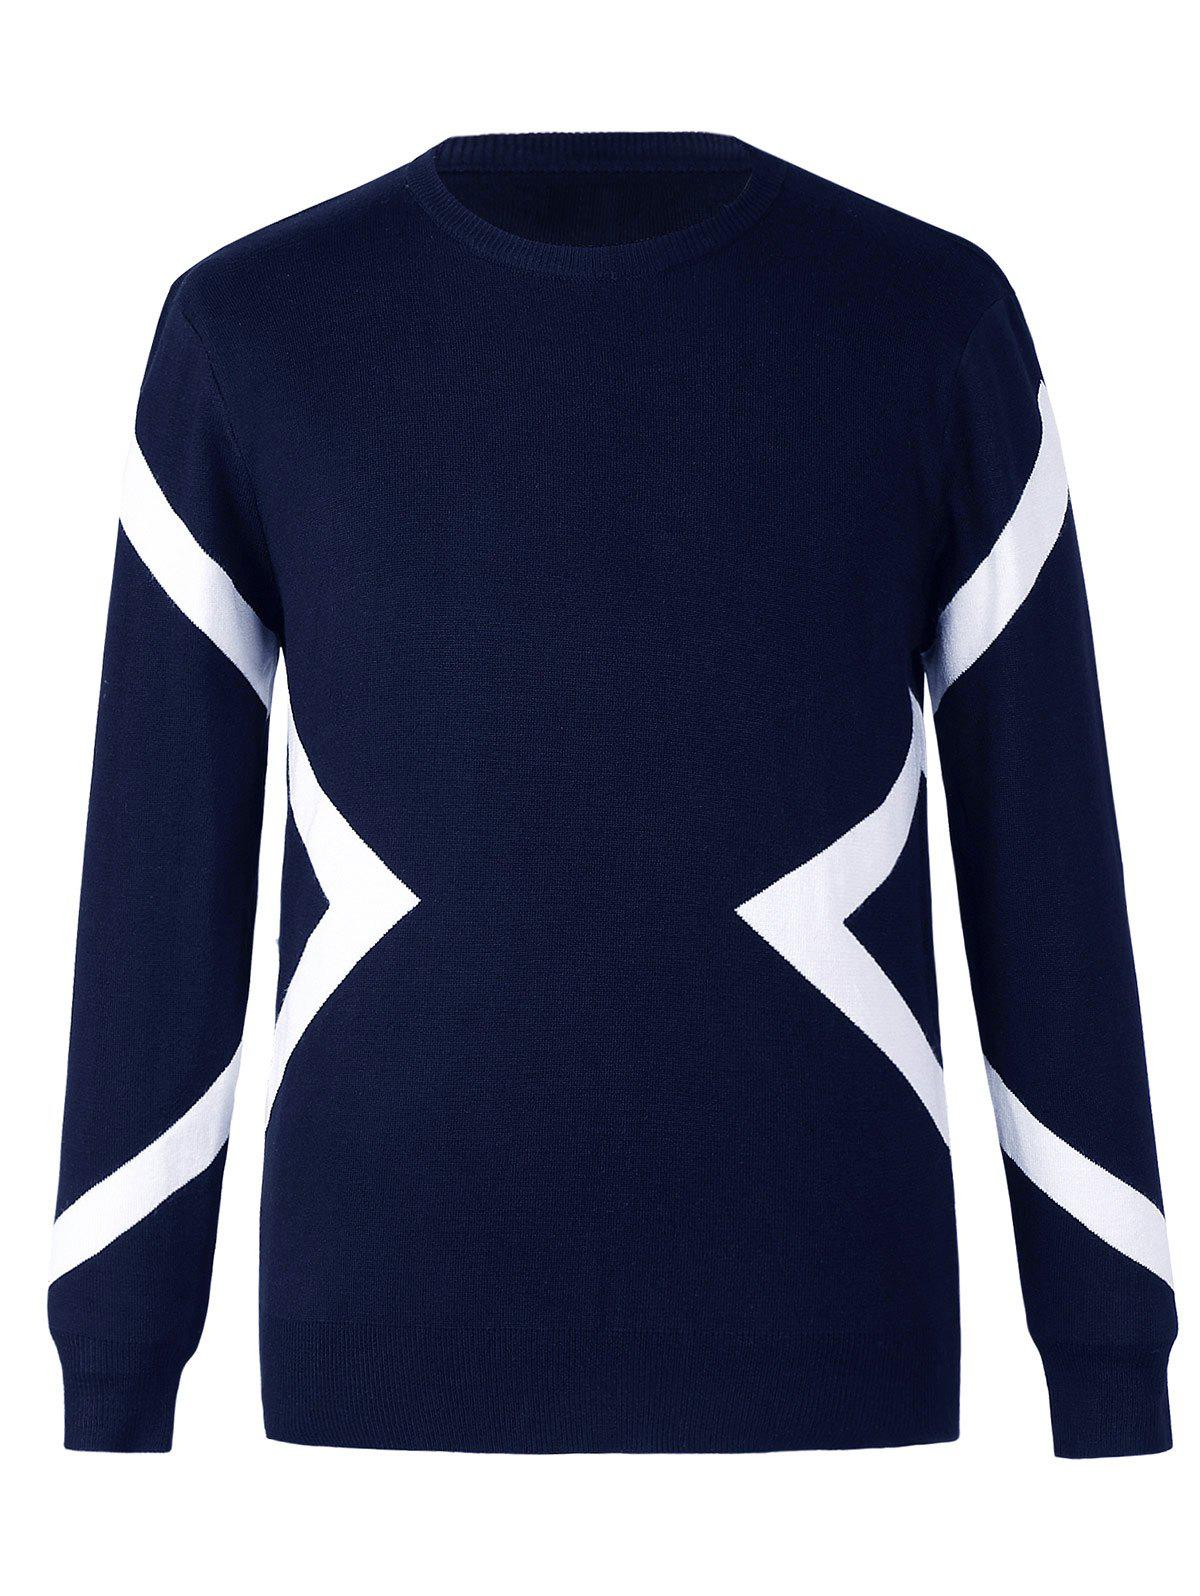 Fashionable Line Design Round Neck Long Sleeves Sweater For Men